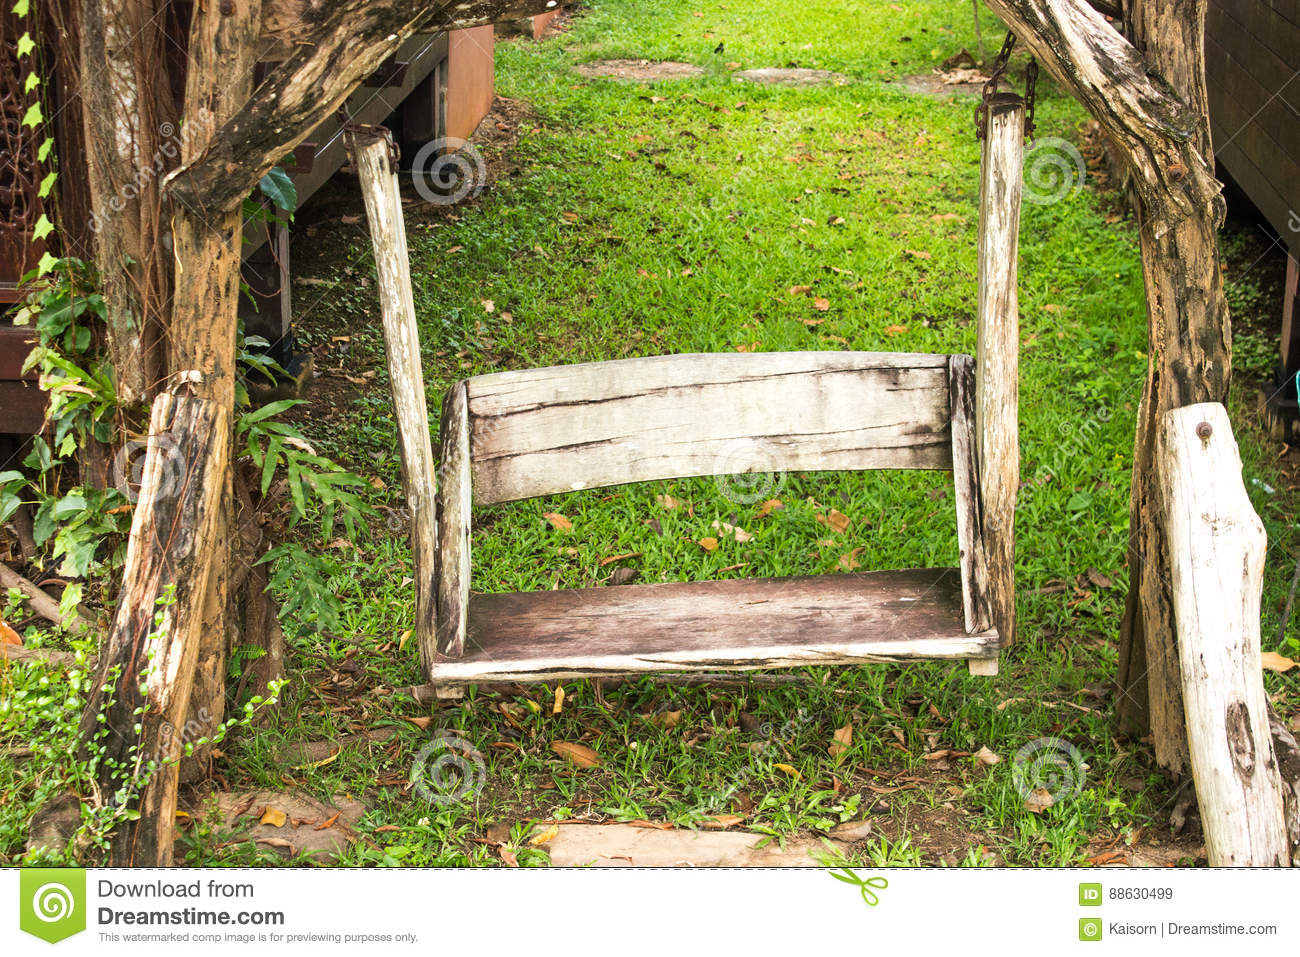 Wooden Porch Swing In Garden Stock Image – Image Of Garden Intended For Vineyard Porch Swings (Image 25 of 25)